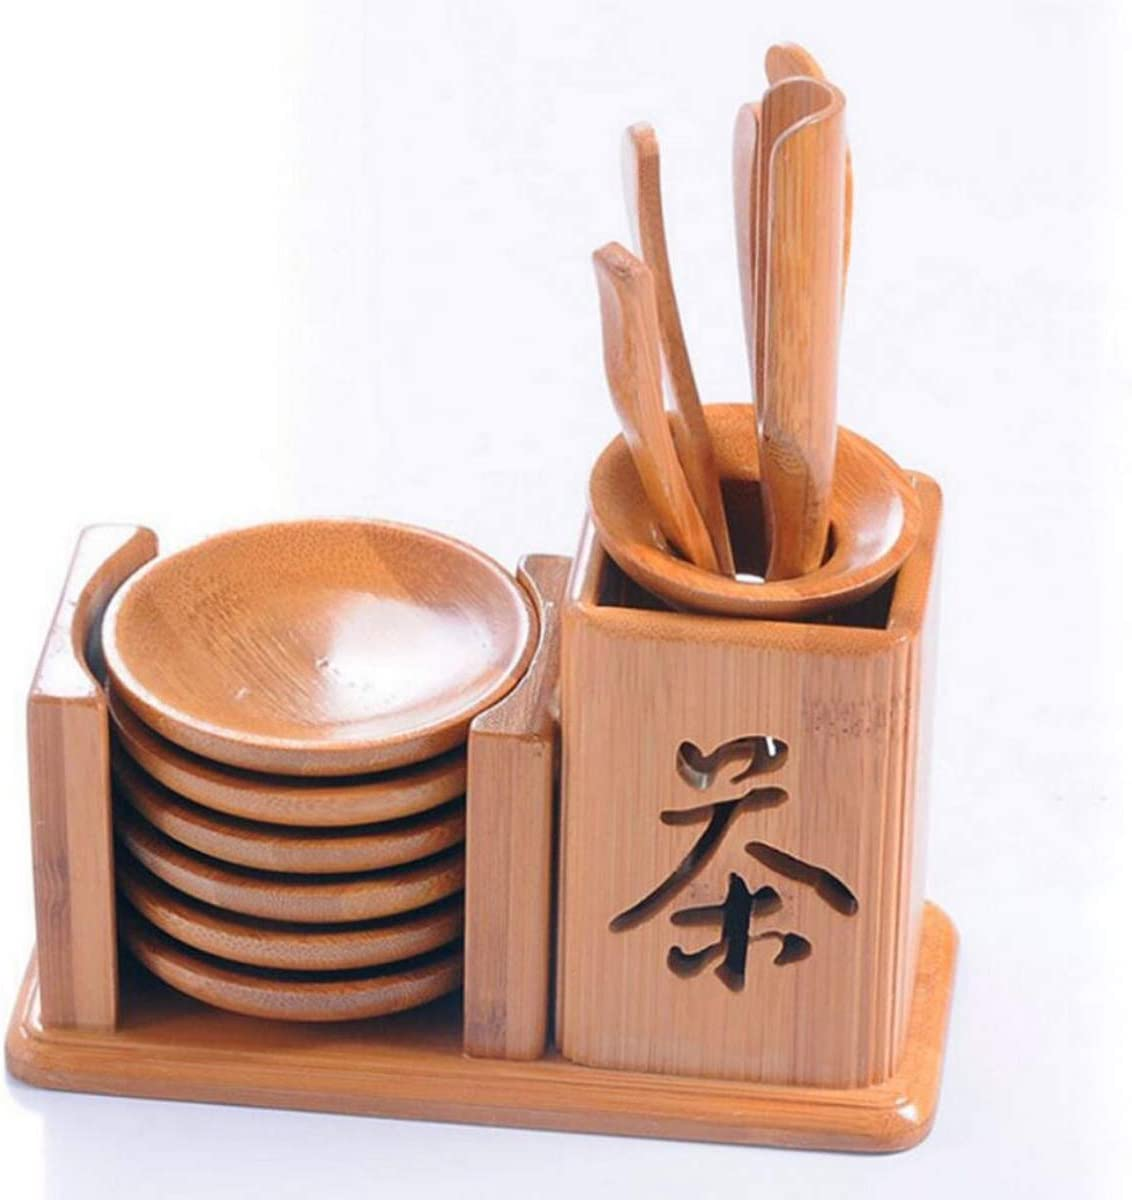 Techson Bamboo Tea Super beauty product restock quality top Tool Set Year-end annual account Gongfu Ceremony Chinese Accesso